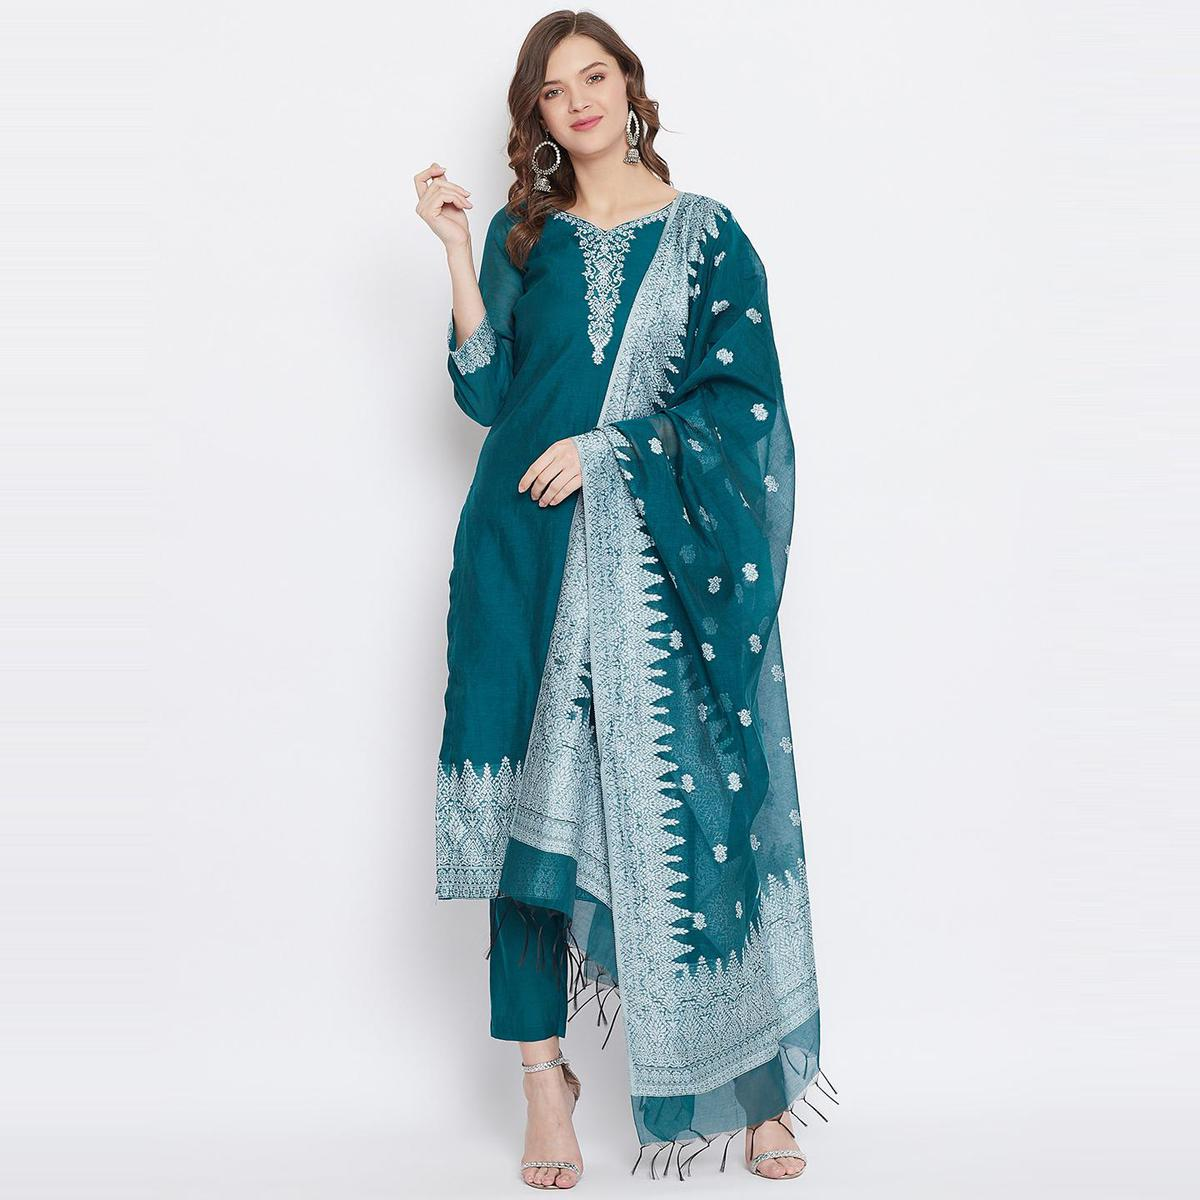 Safaa - New Green Colored Cotton Blend Woven Design Women Unstitched Dress Material With Dupatta